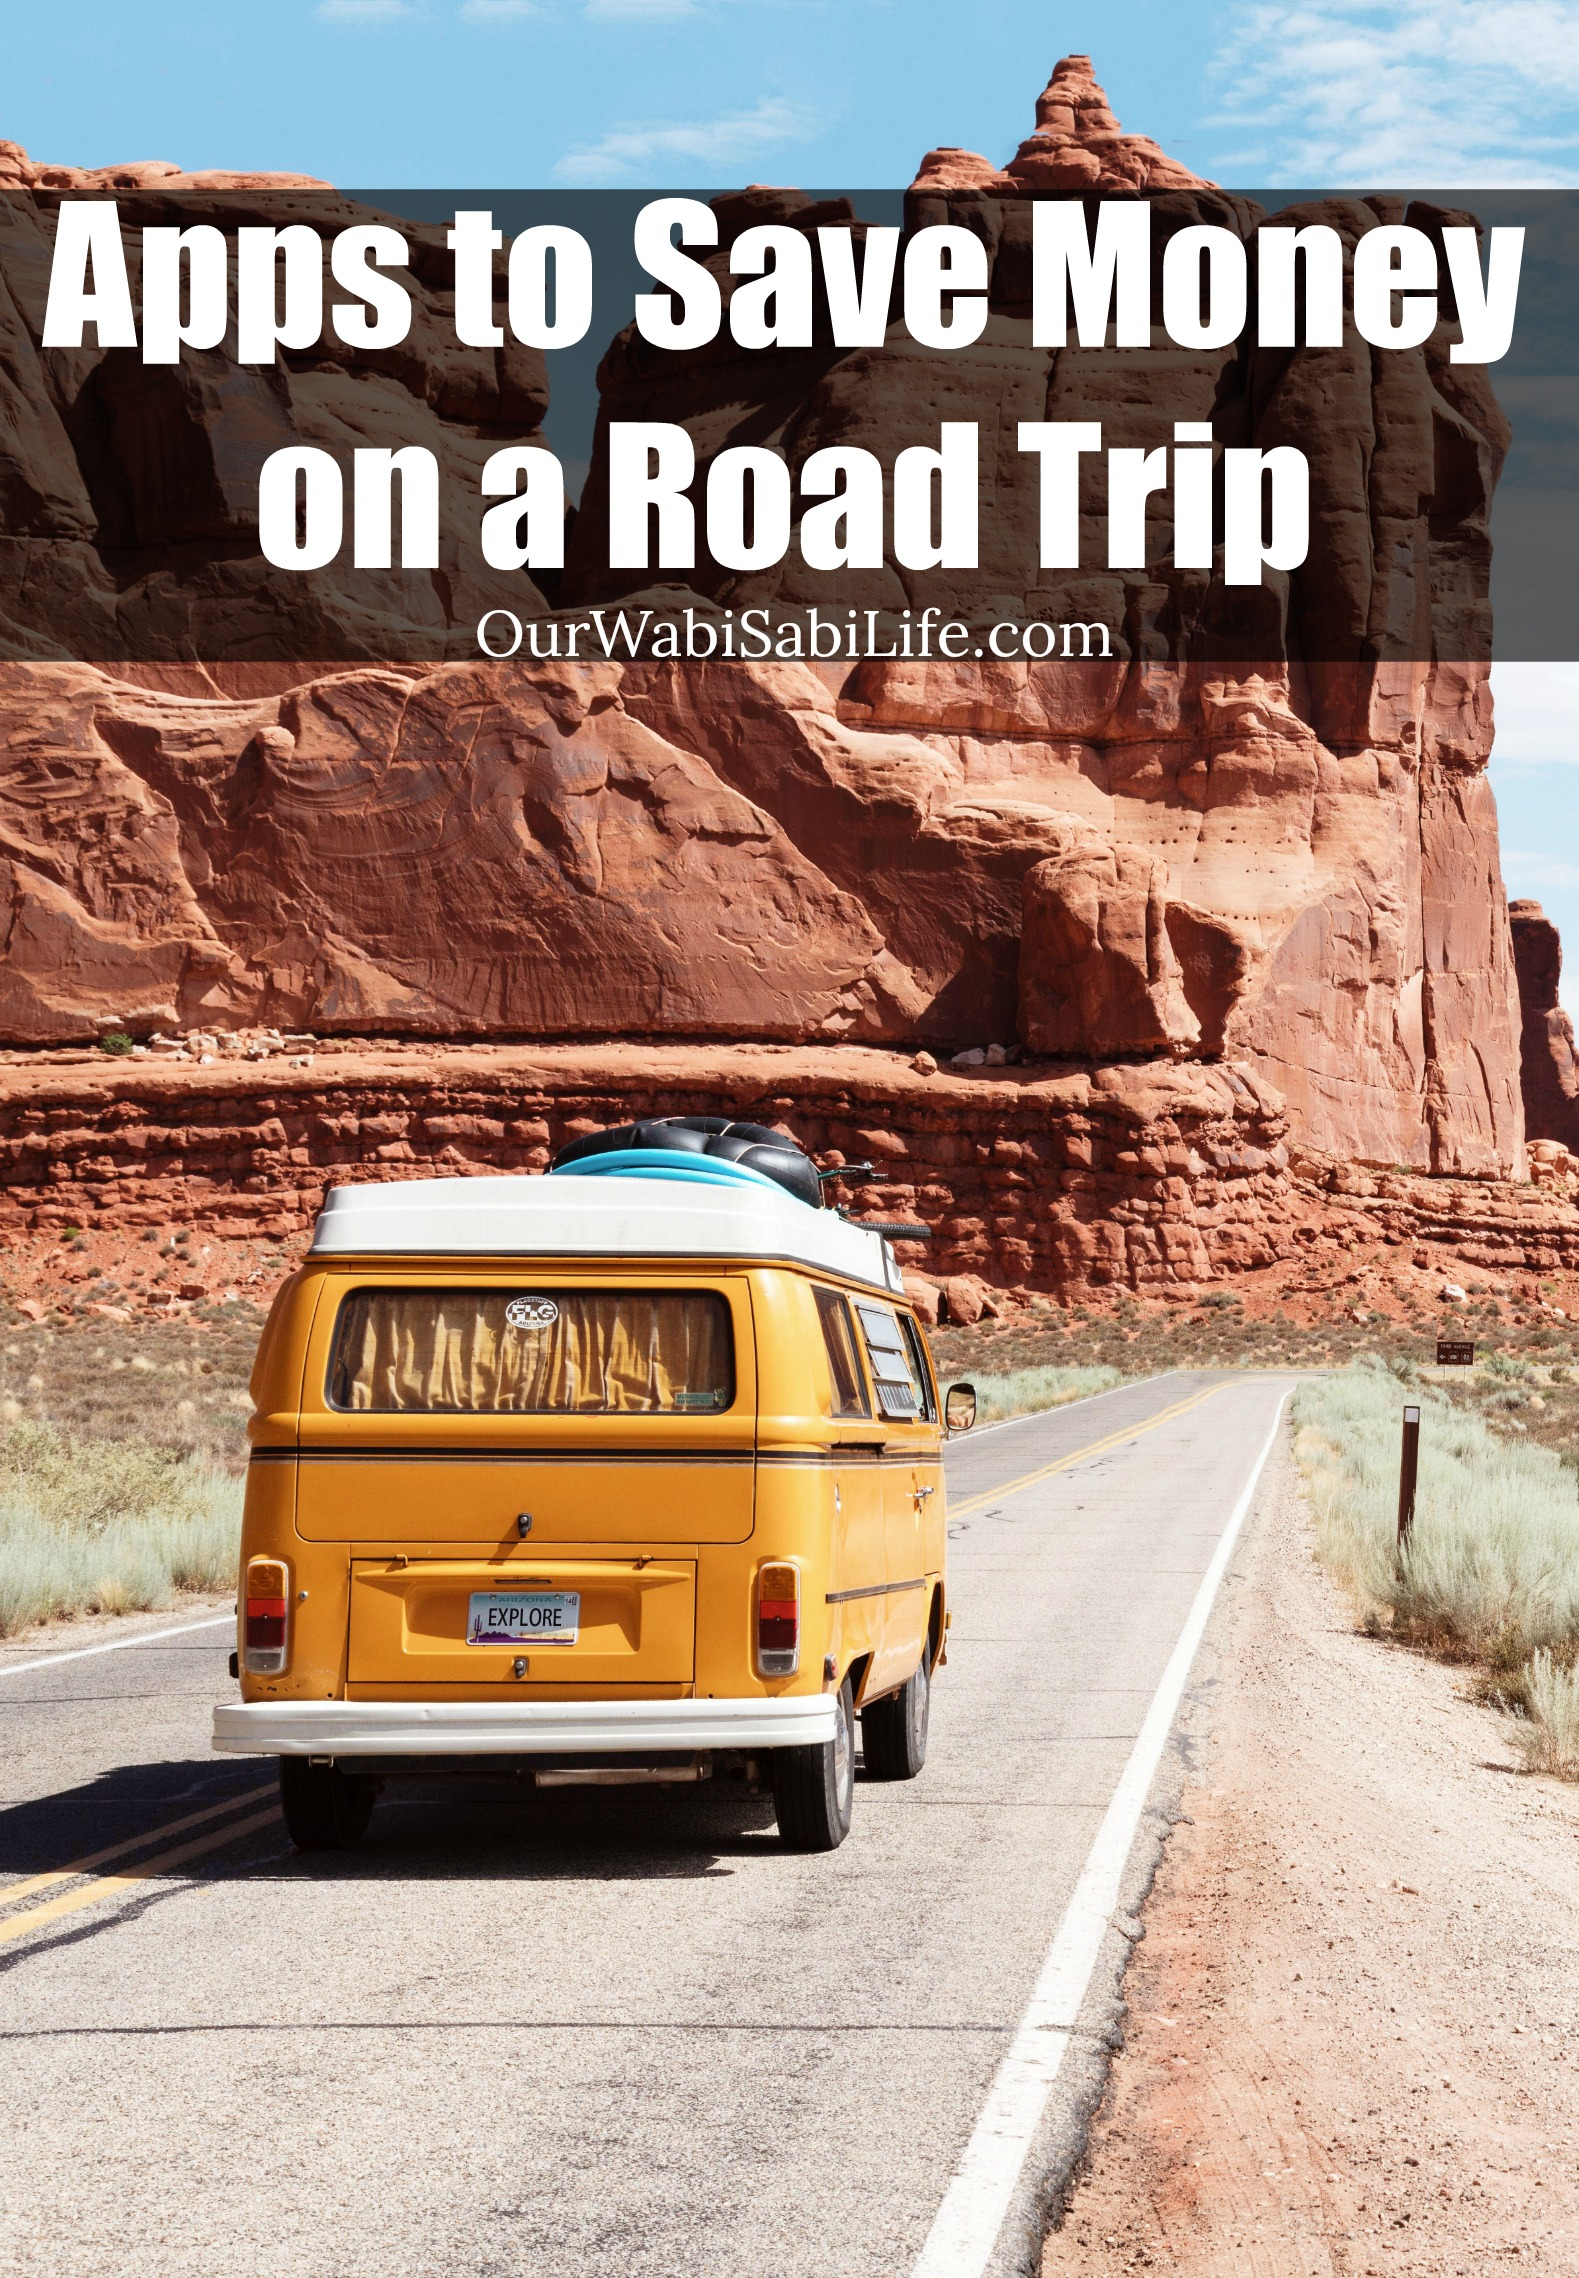 Looking for ways to save money on a road trip? Use these apps to save money on gas and other ways to save money on a road trip.